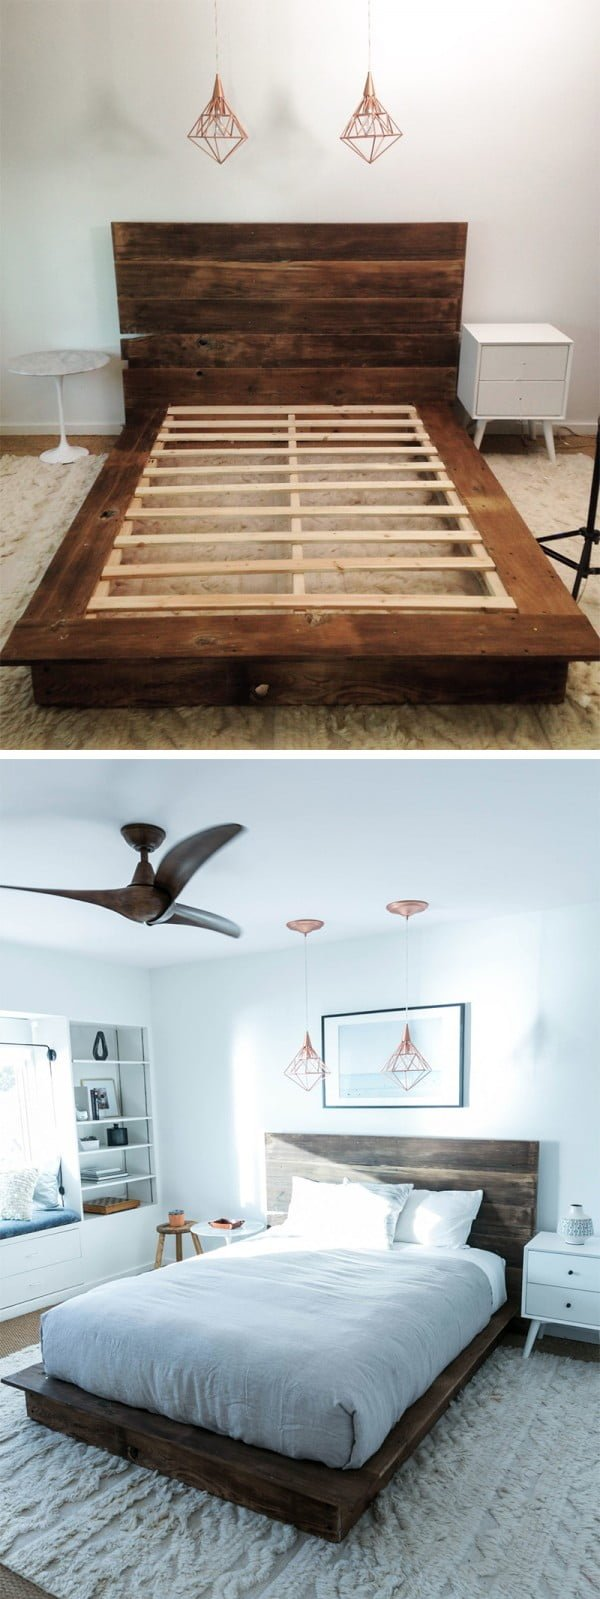 45 Easy DIY Bed Frame Projects You Can Build on a Budget - Check out how to build a DIY bed frame from reclaimed wood